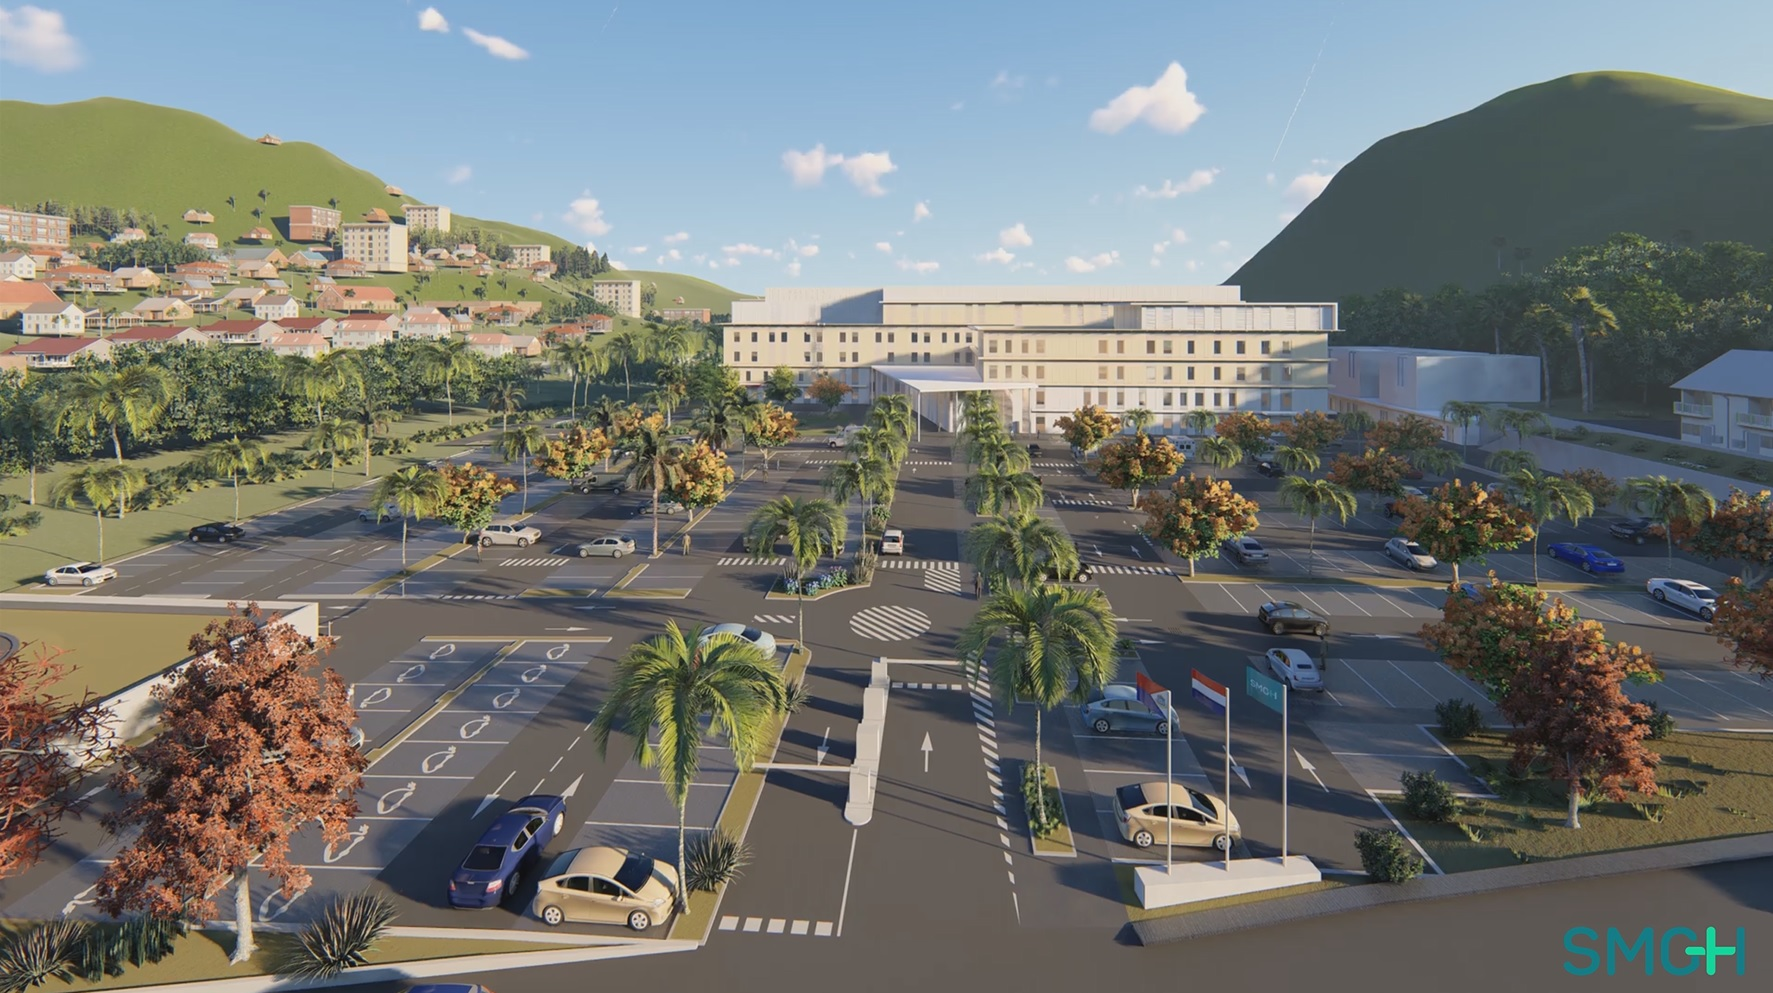 Virtual tour of St. Maarten General Hospital launched